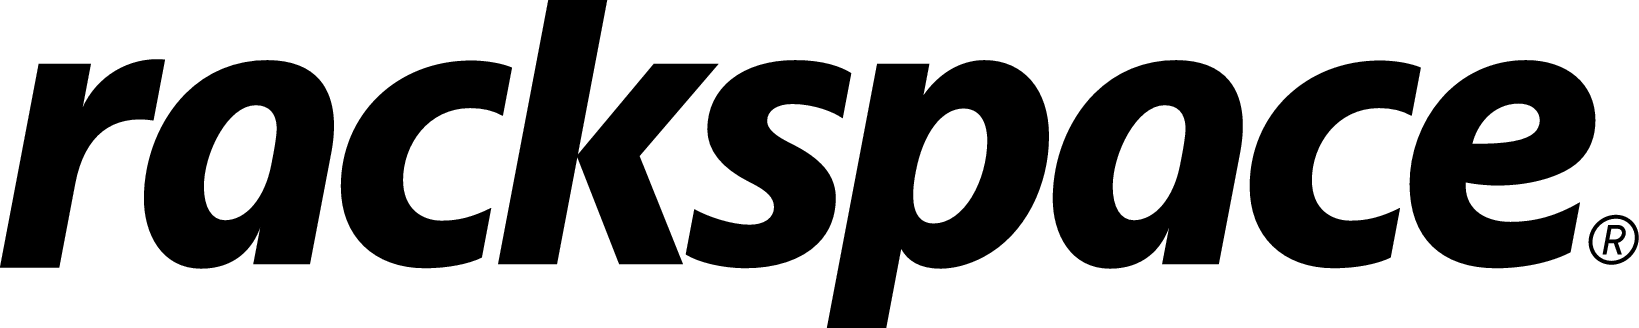 Rackspace_Wordmark_Black